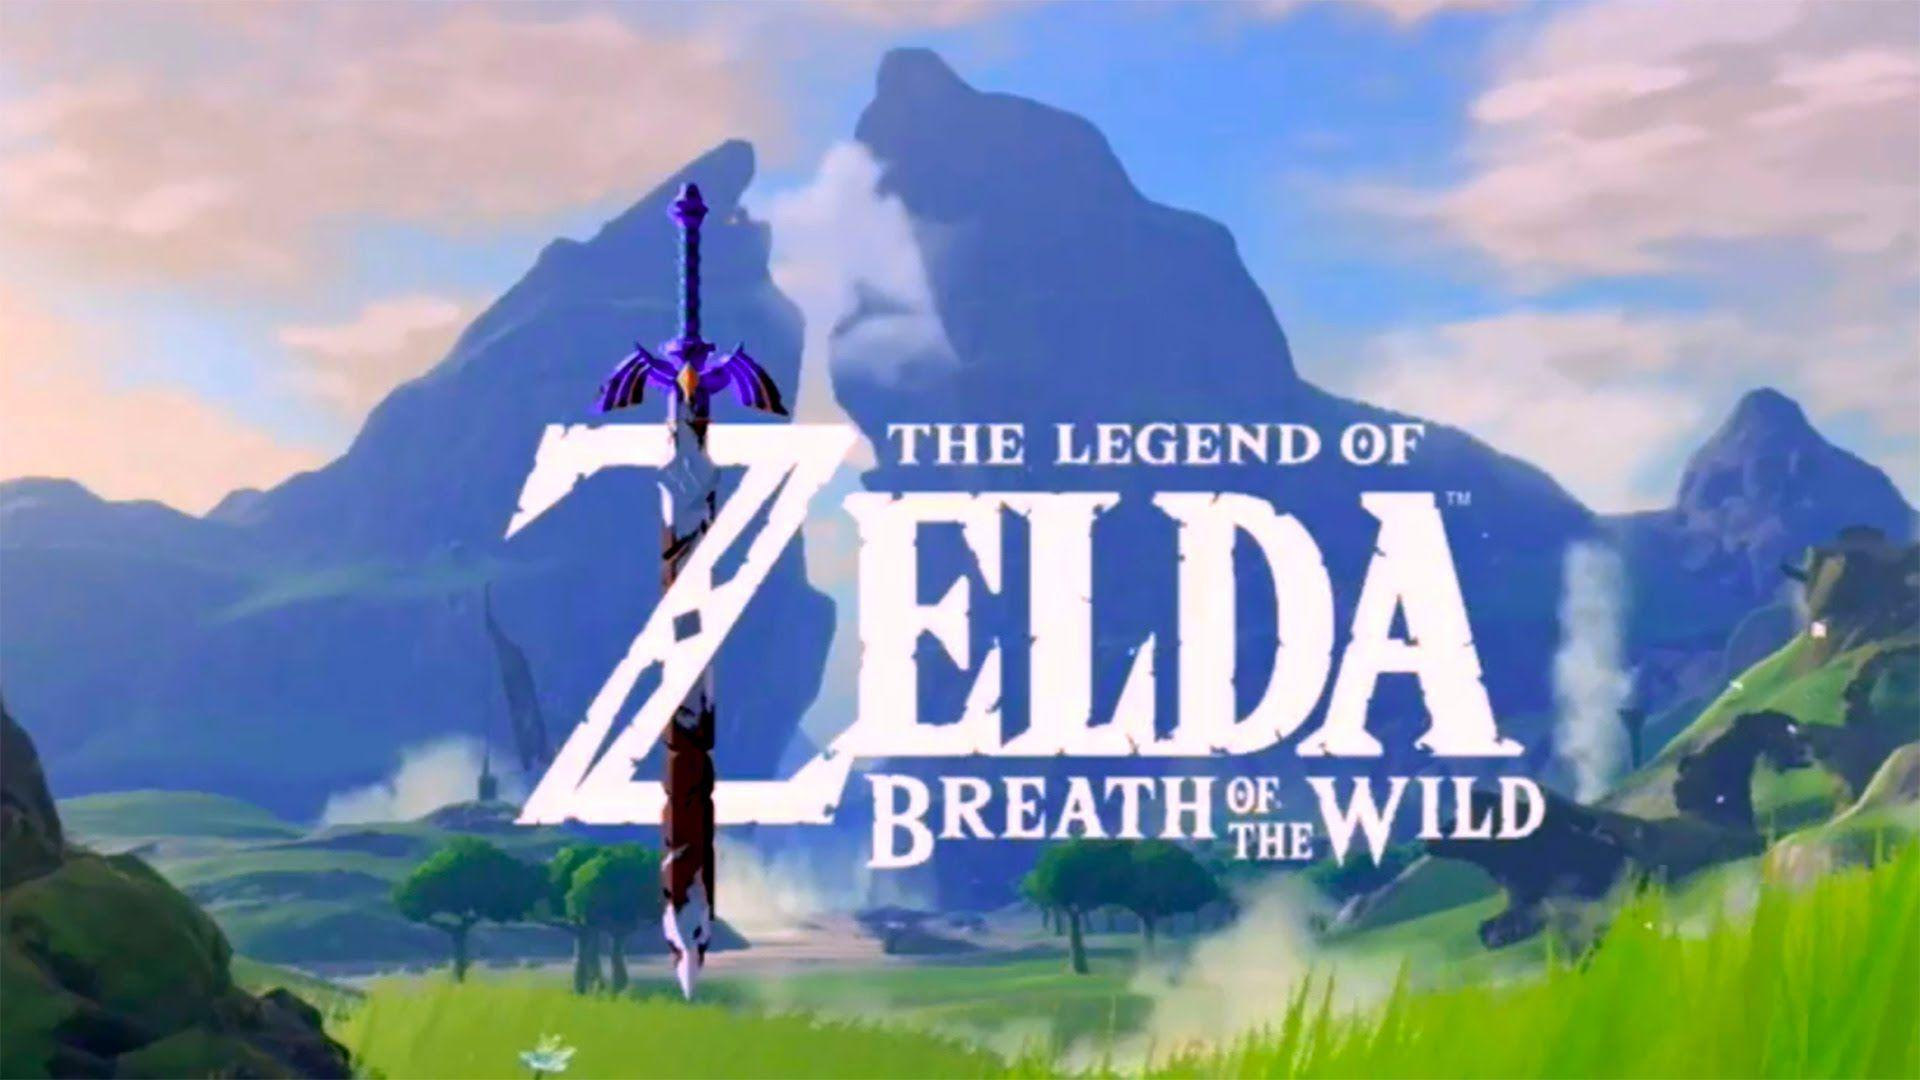 E3 2016 The Legend Of Zelda Breath Of The Wild Gameplay E3 2016